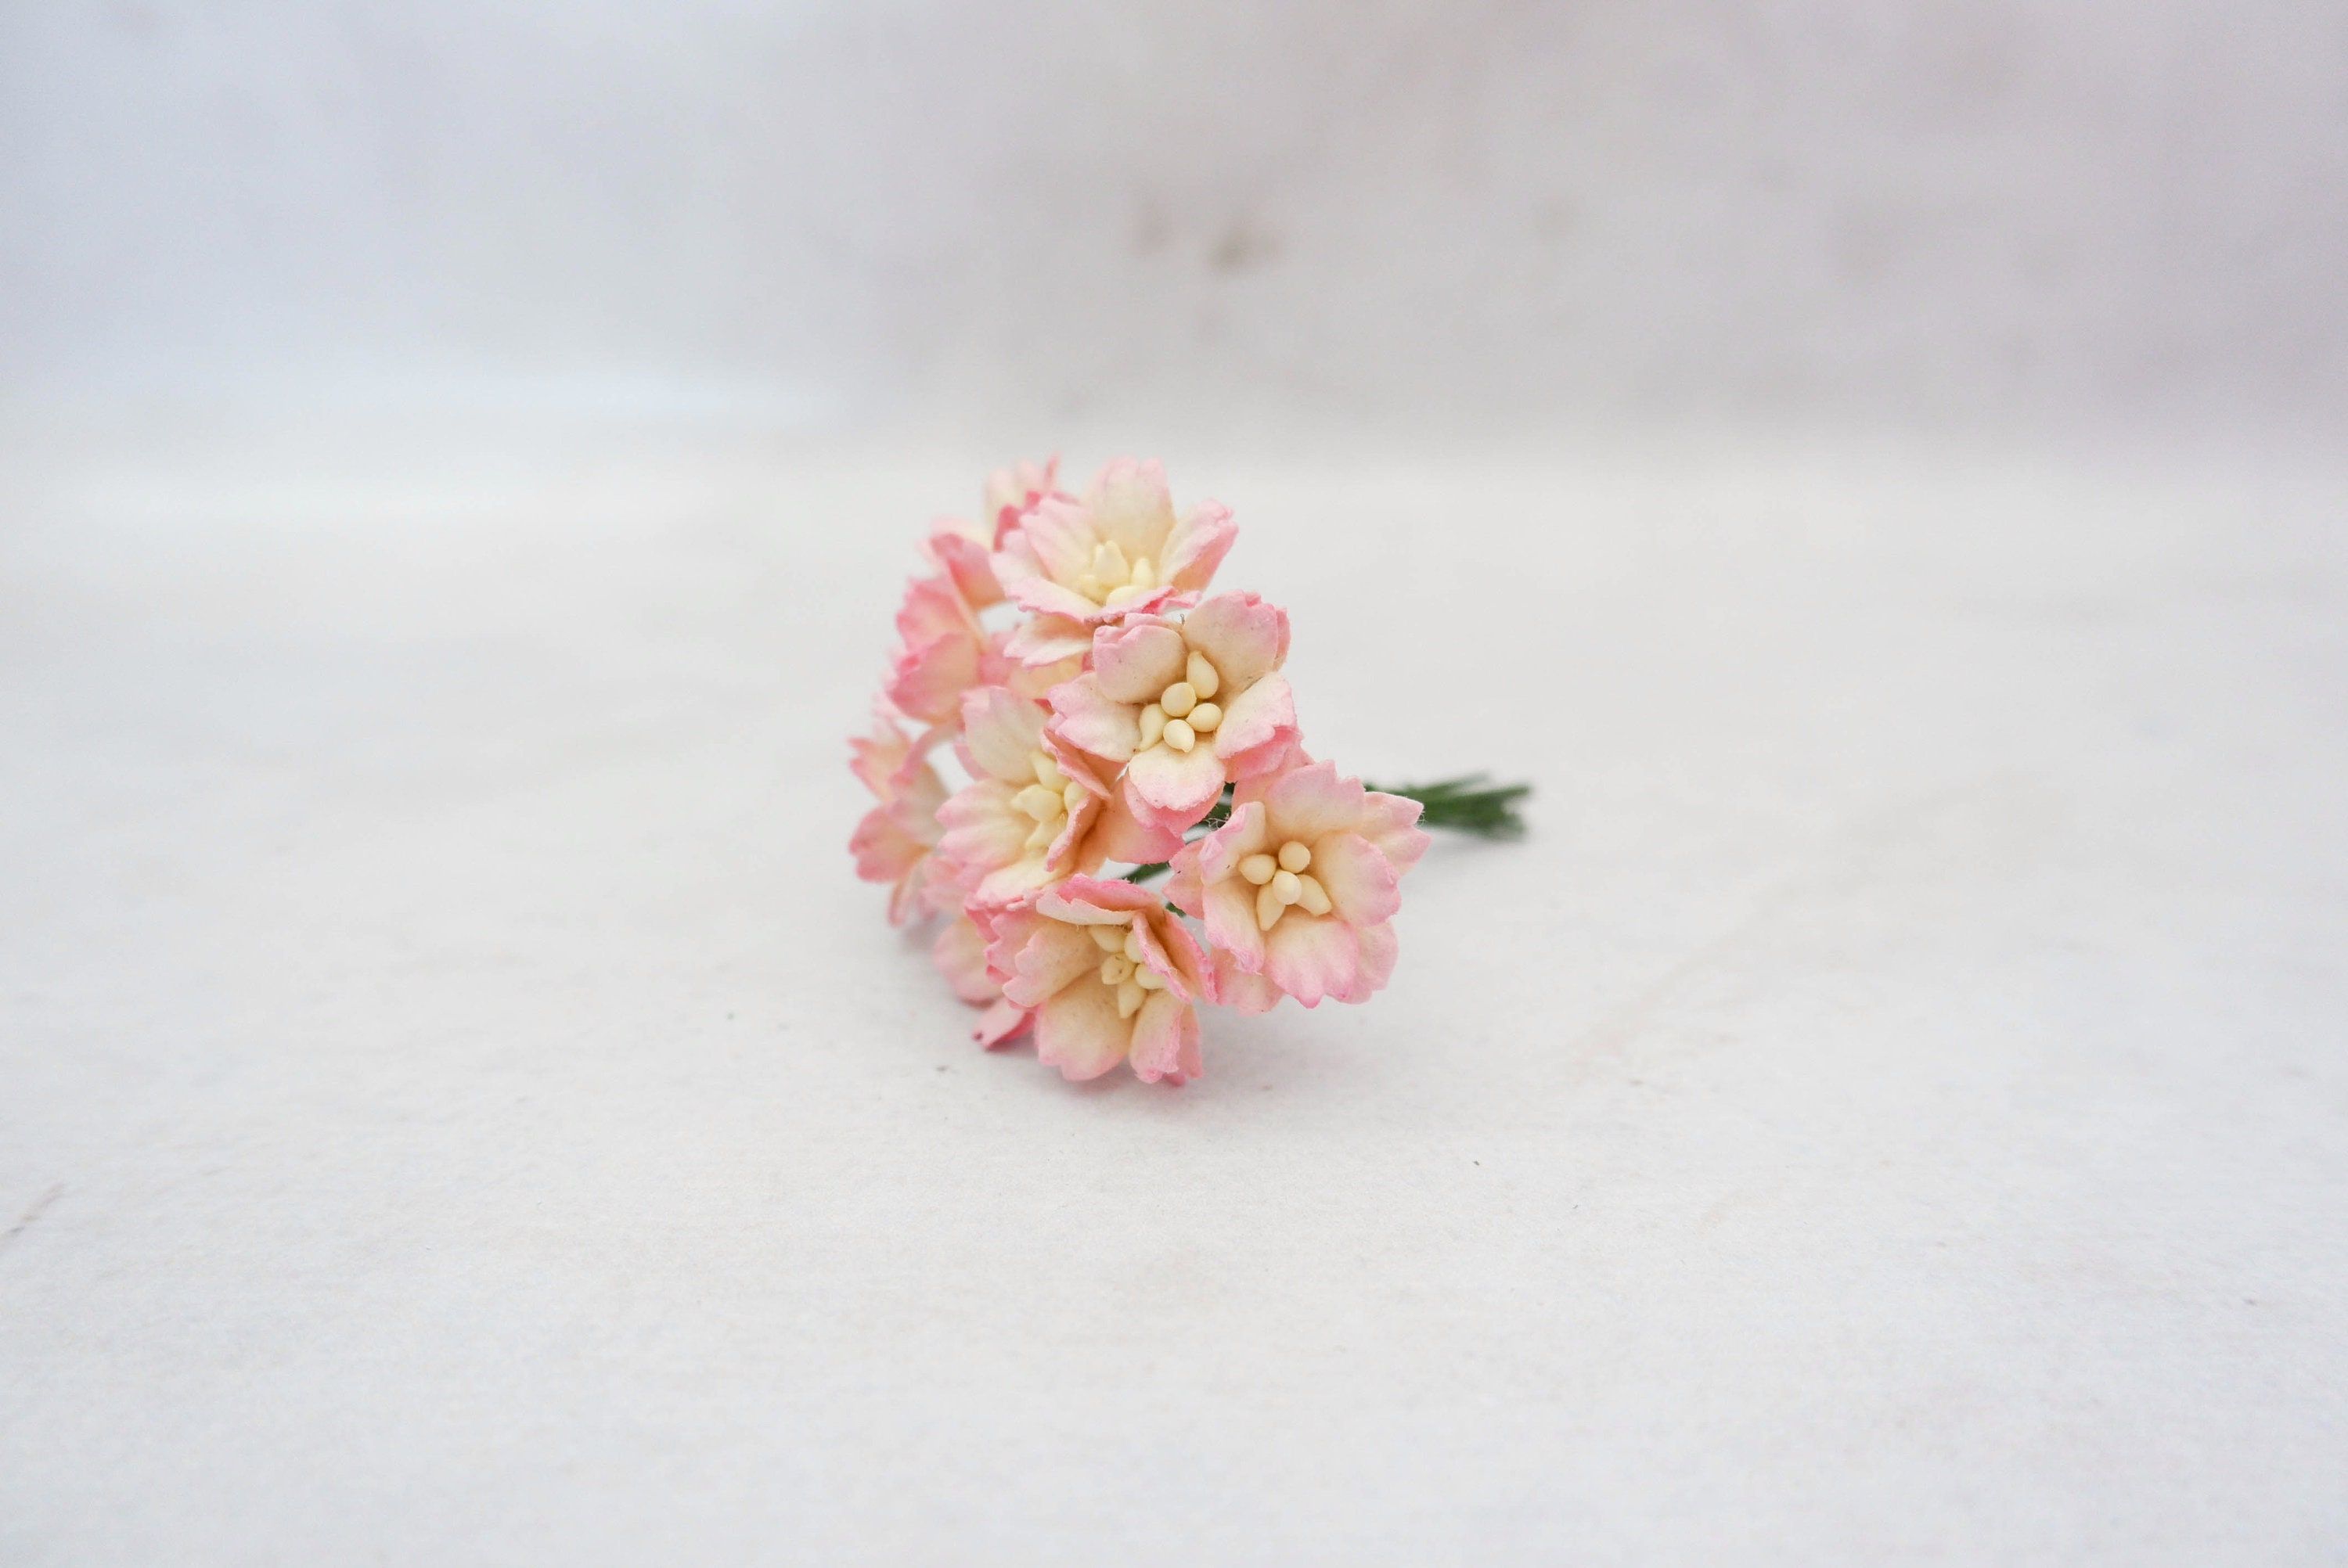 10 20mm Pink Tip Paper Cherry Blossoms With Wire Stems 2 Cm Etsy